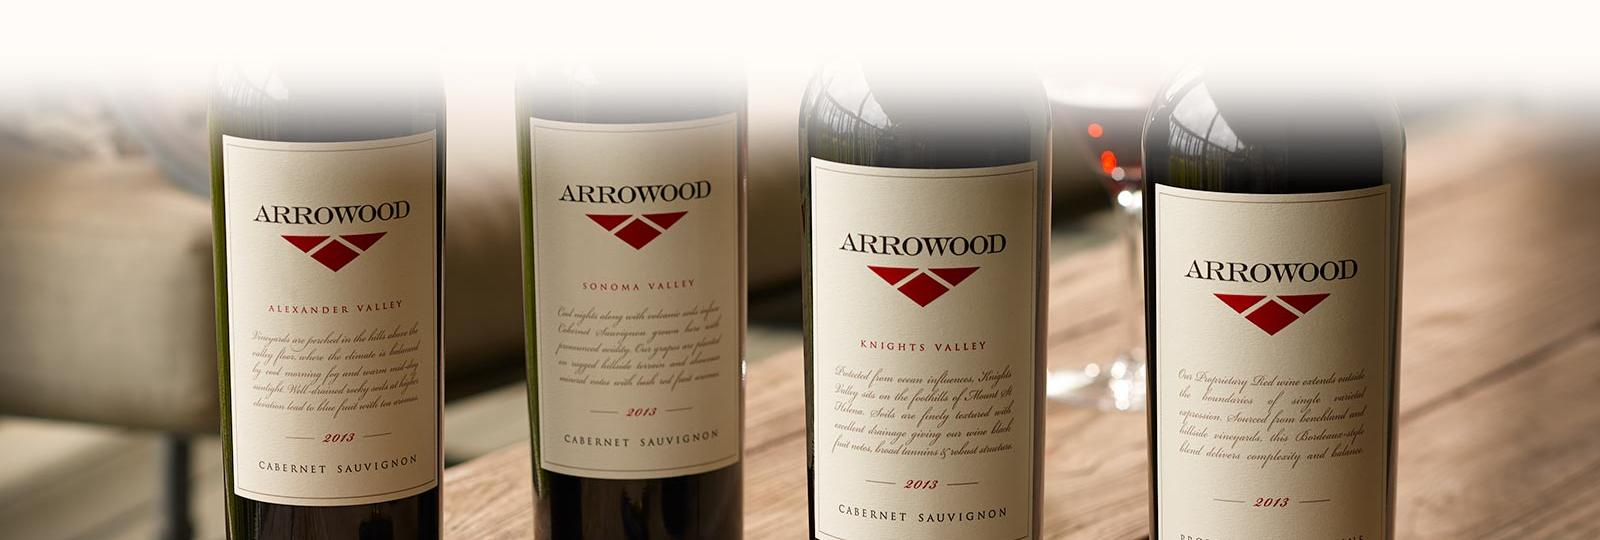 Arrowood wines on a table